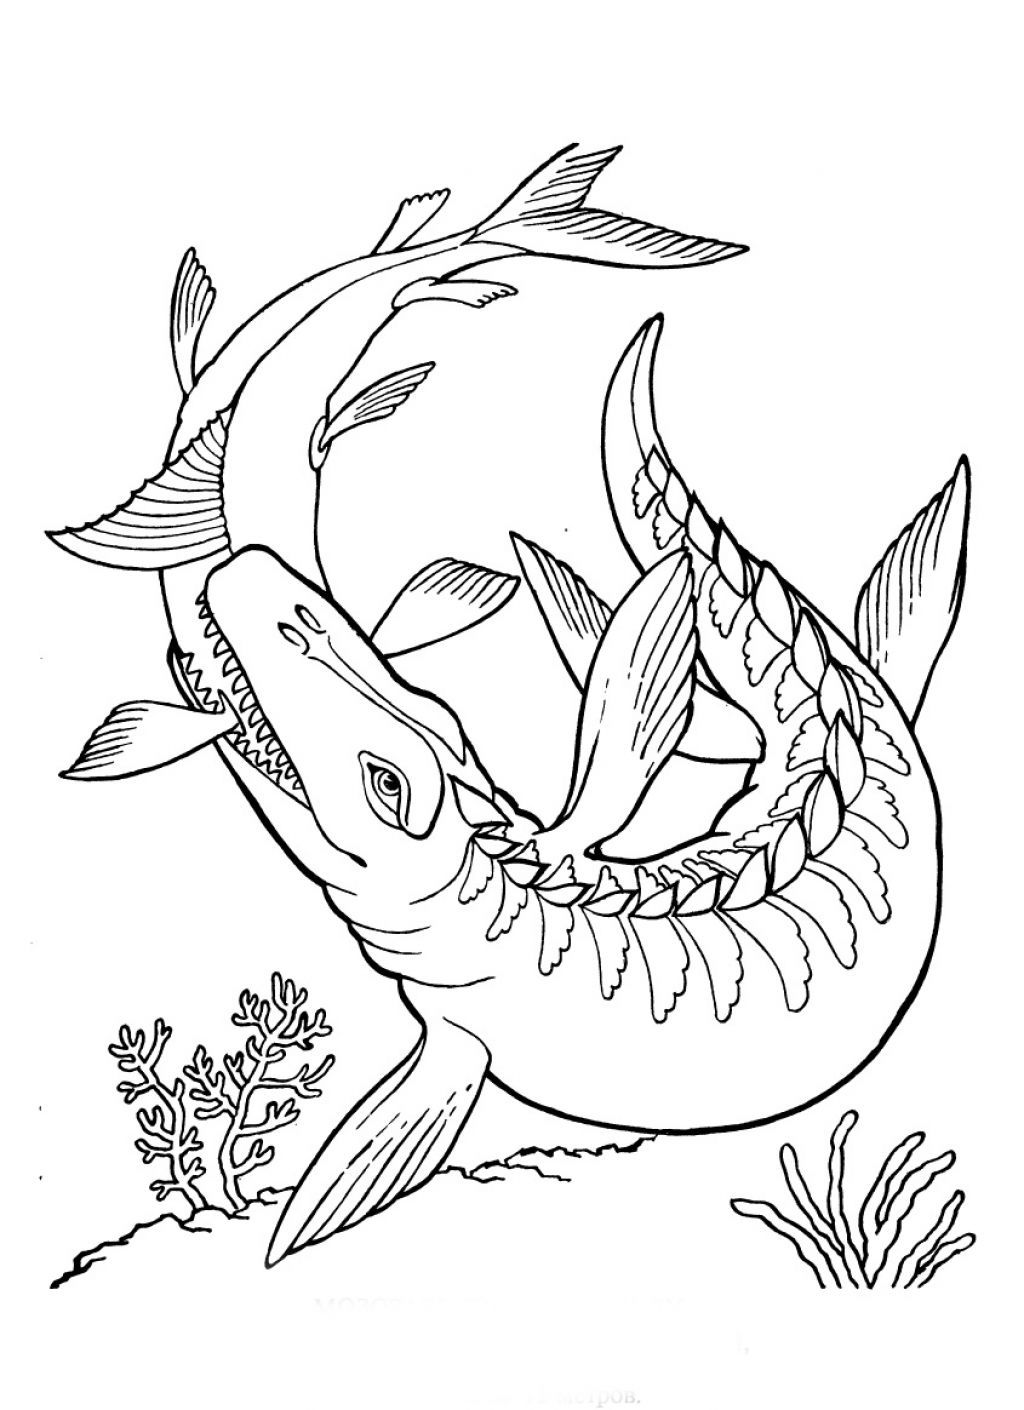 free printable coloring pages of dinosaurs swimming dinosaur coloring pages free printable dinosaur of coloring printable pages dinosaurs free